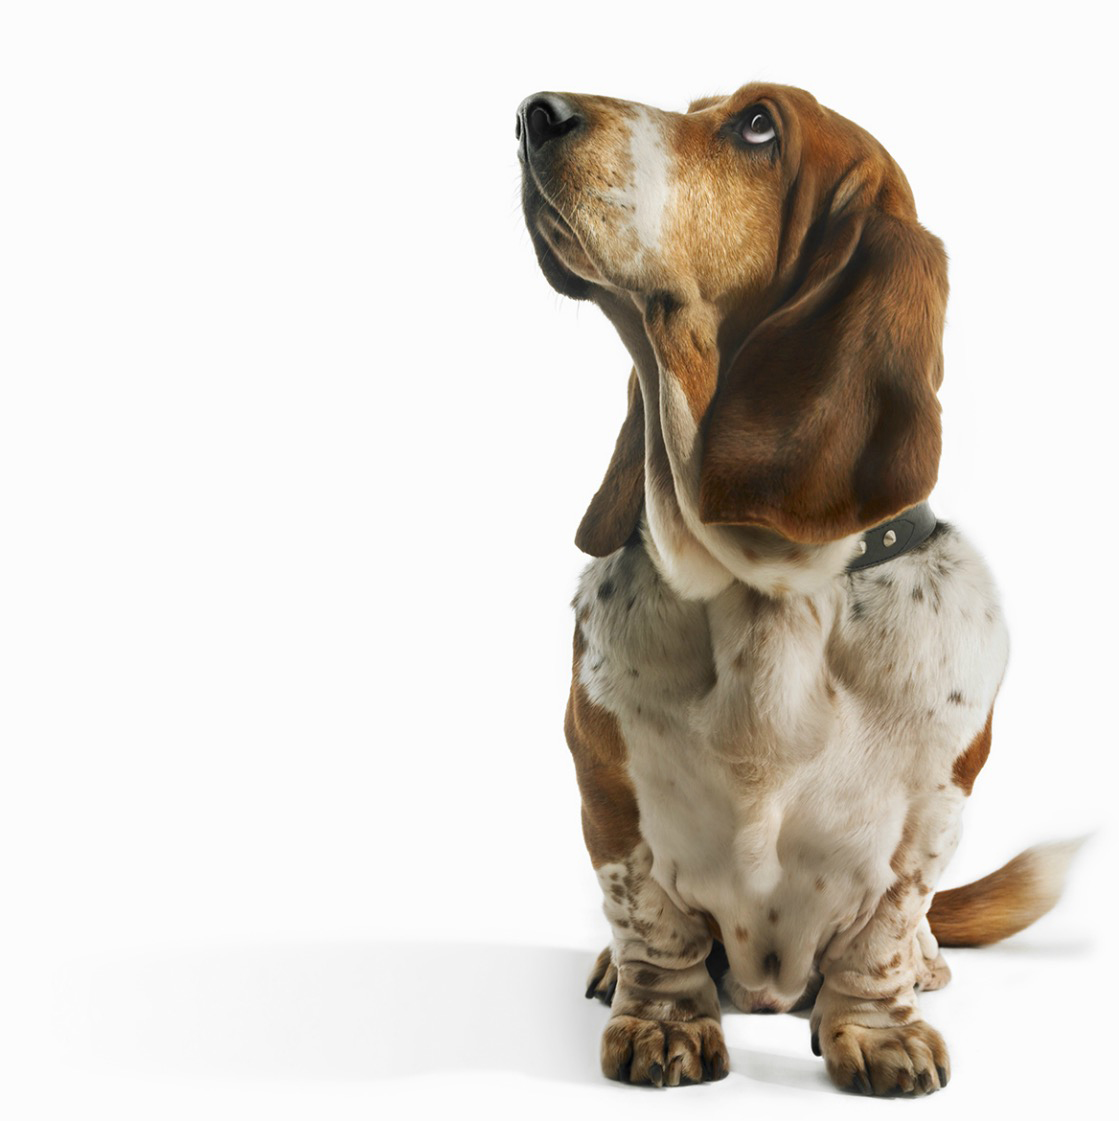 Basset Hound looking up longingly on white background Copyright Gandee Vasan